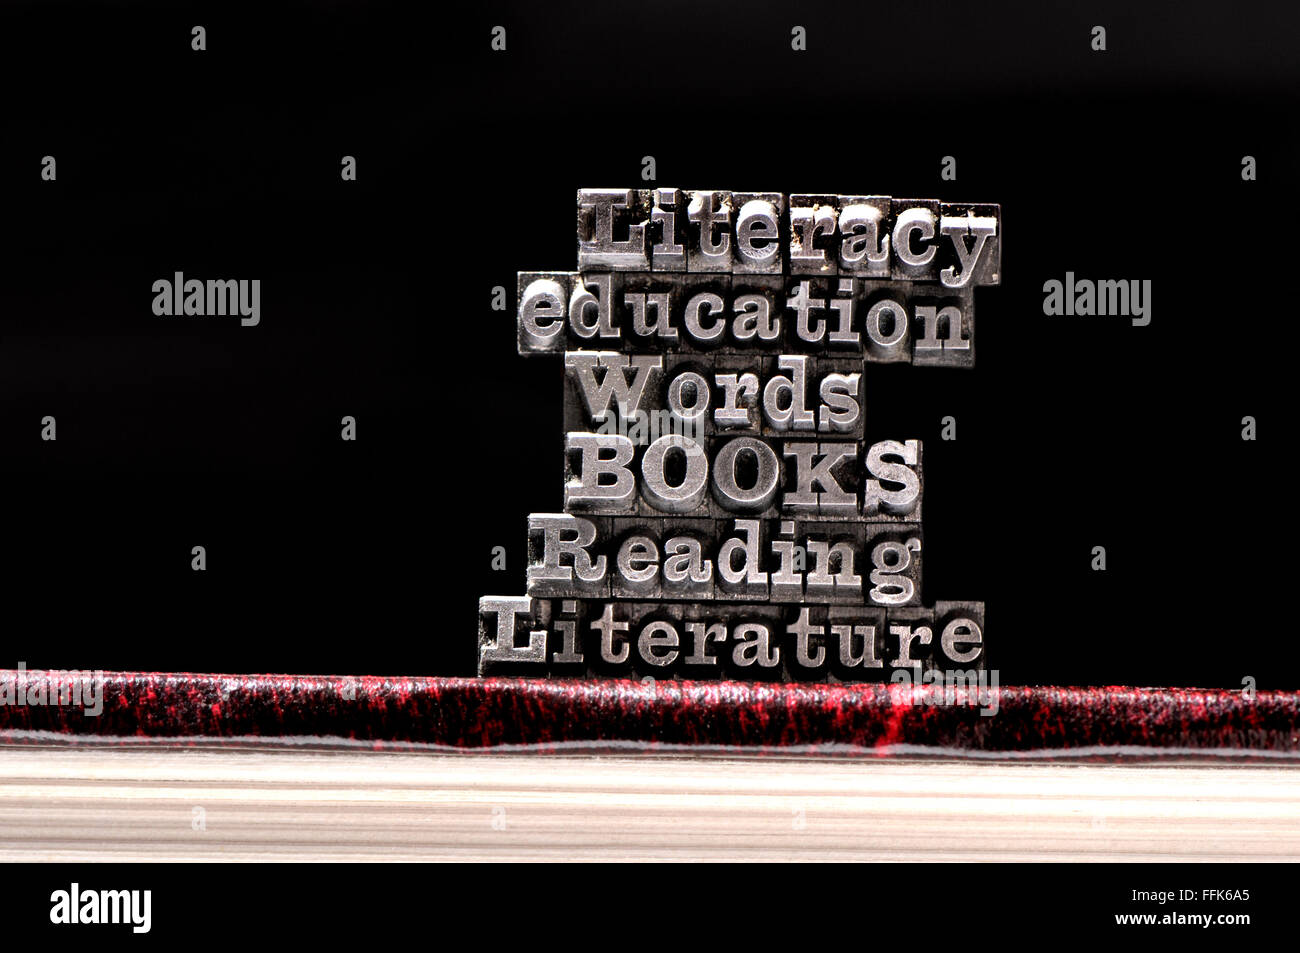 Letterpress characters spelling out educational / literacy words on a book - Stock Image